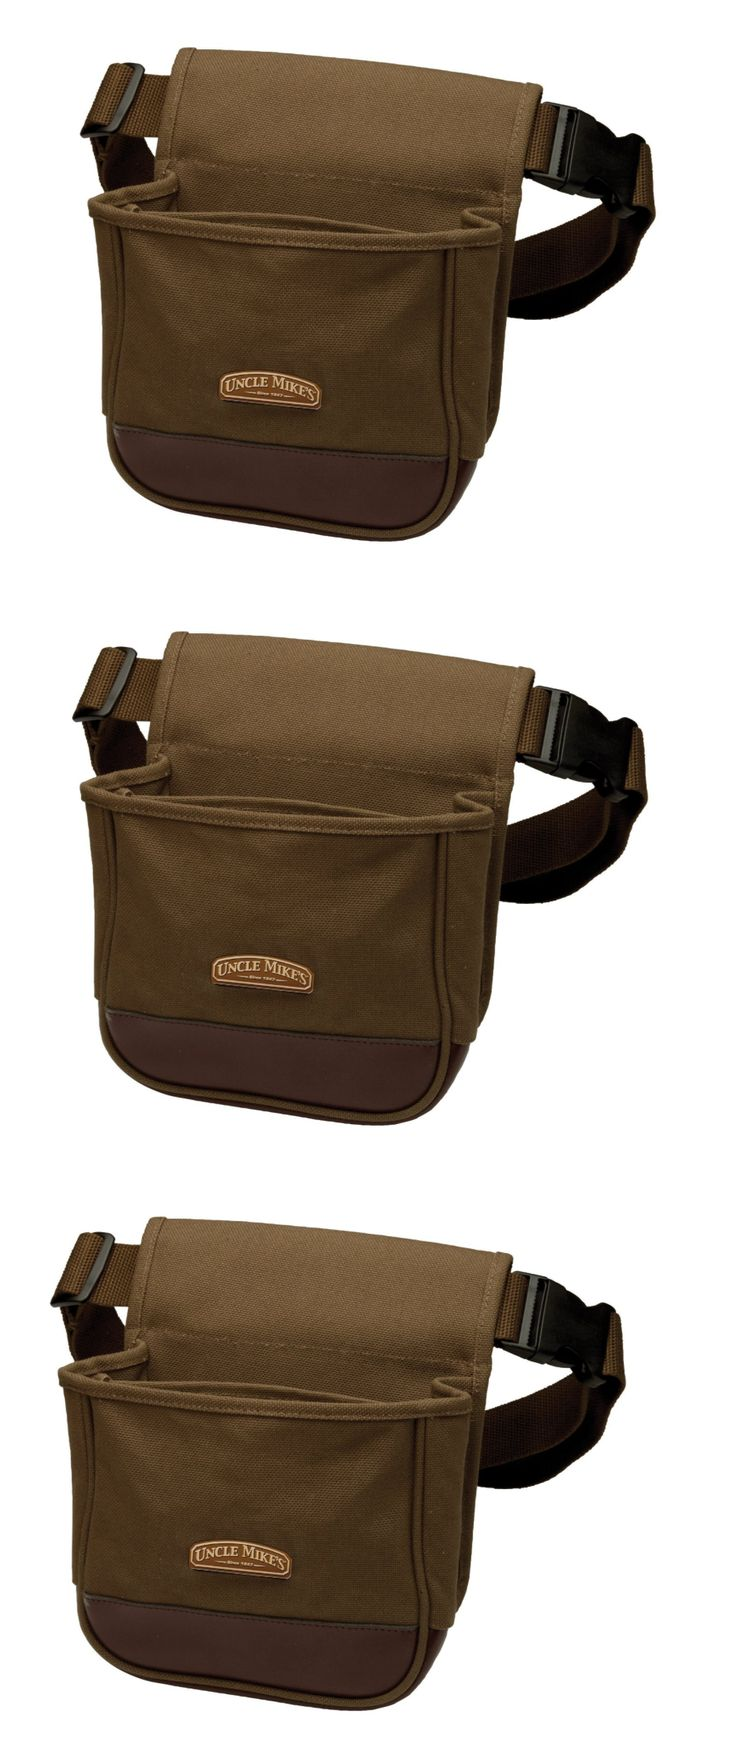 Ammunition Belts and Bandoliers 177884: Duck Hunting Bag 20 12 Gauge Shotgun Shell Holder Small Pouch Shooting Belt New -> BUY IT NOW ONLY: $33.77 on eBay!